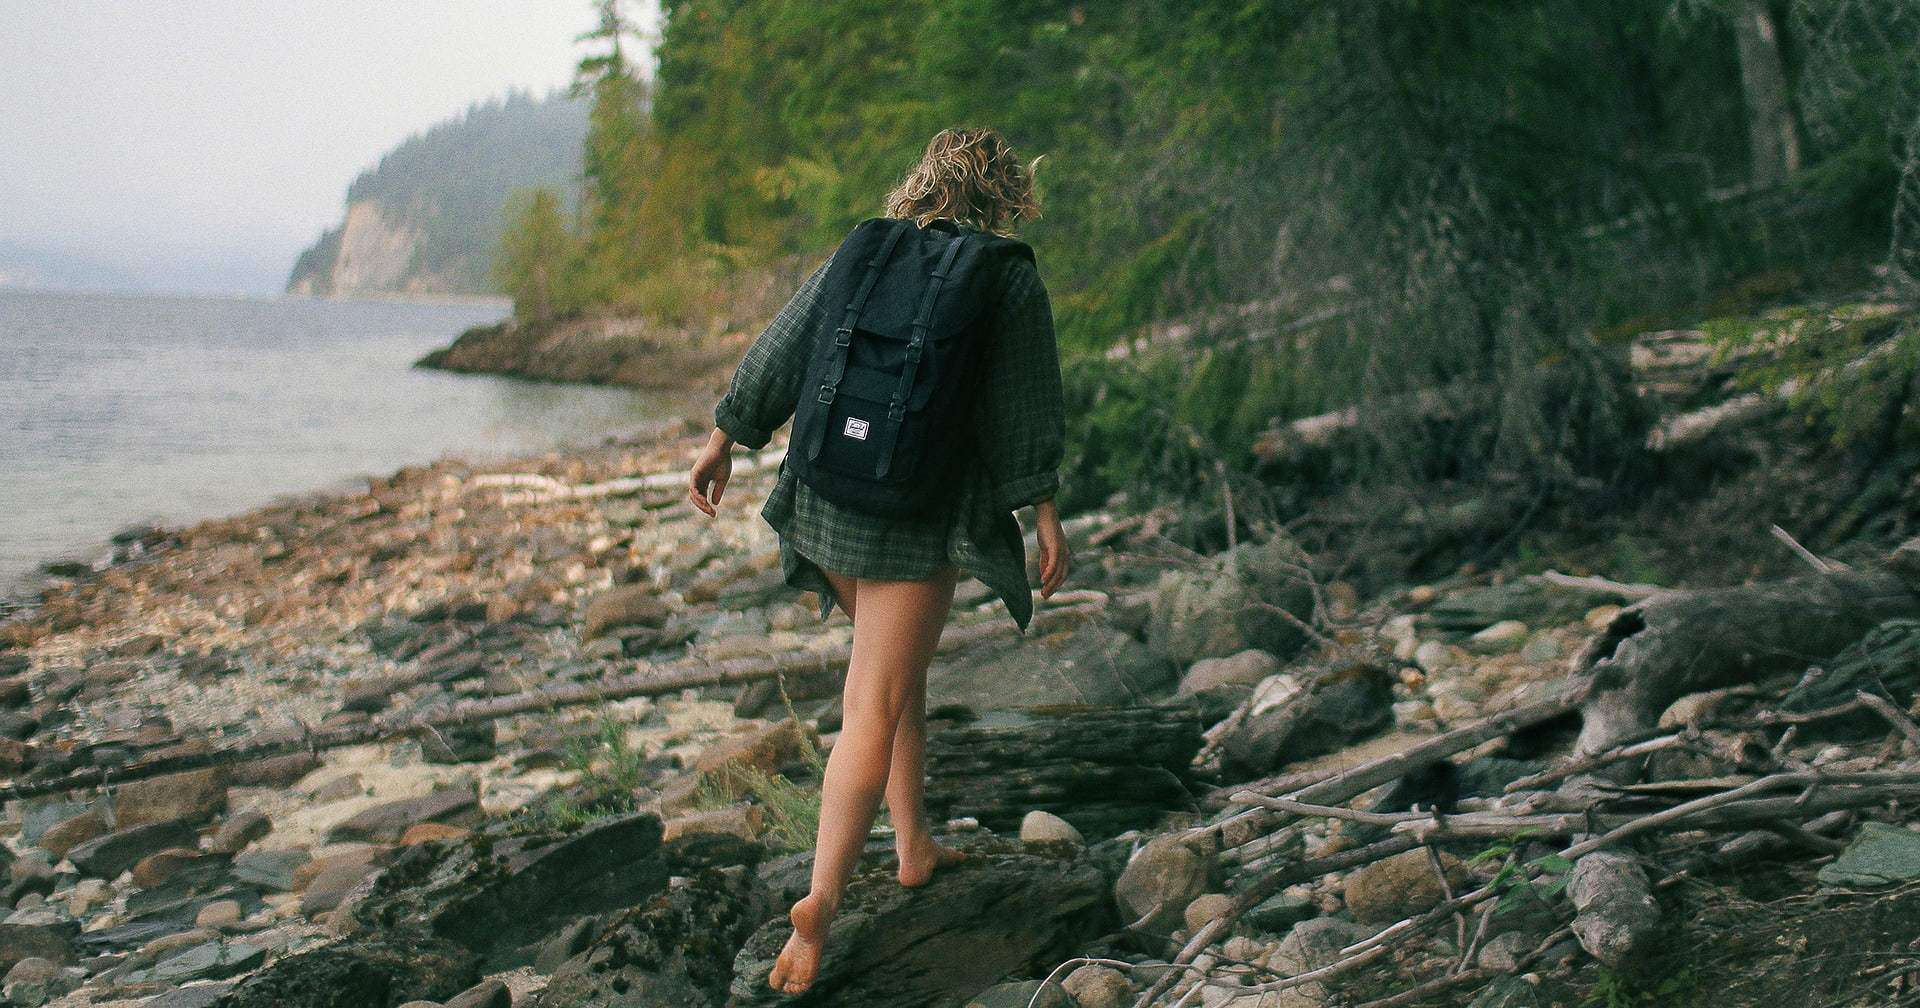 Backpacking Minimalist How to Travel with Less (Minimalist Travel)